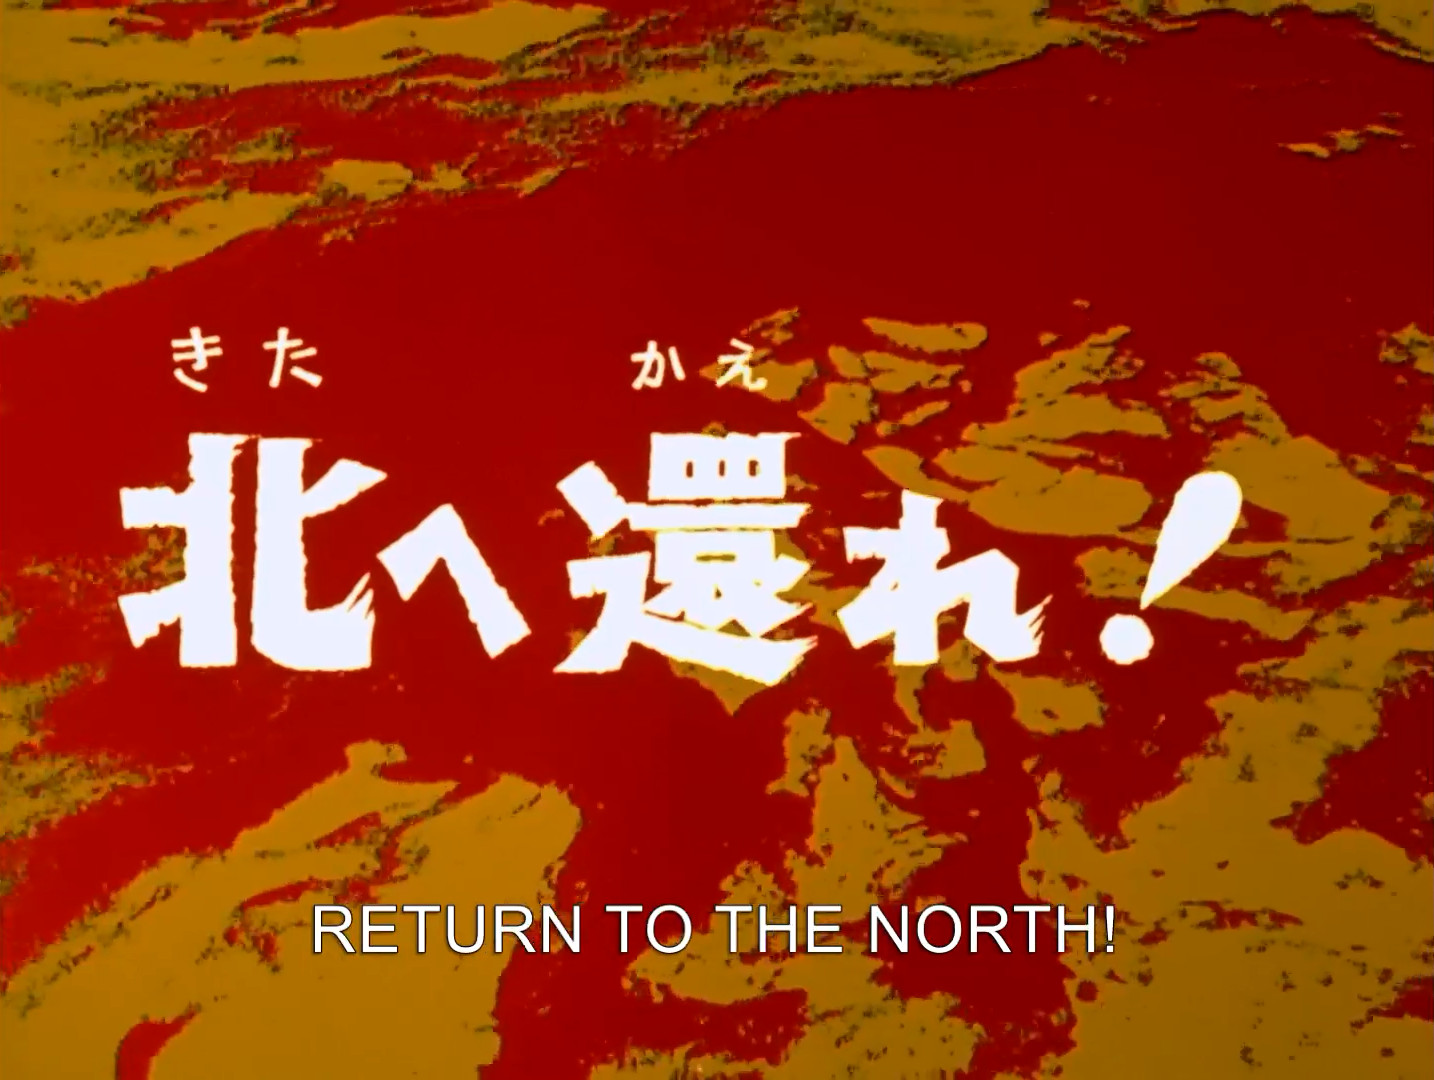 Return to the North!